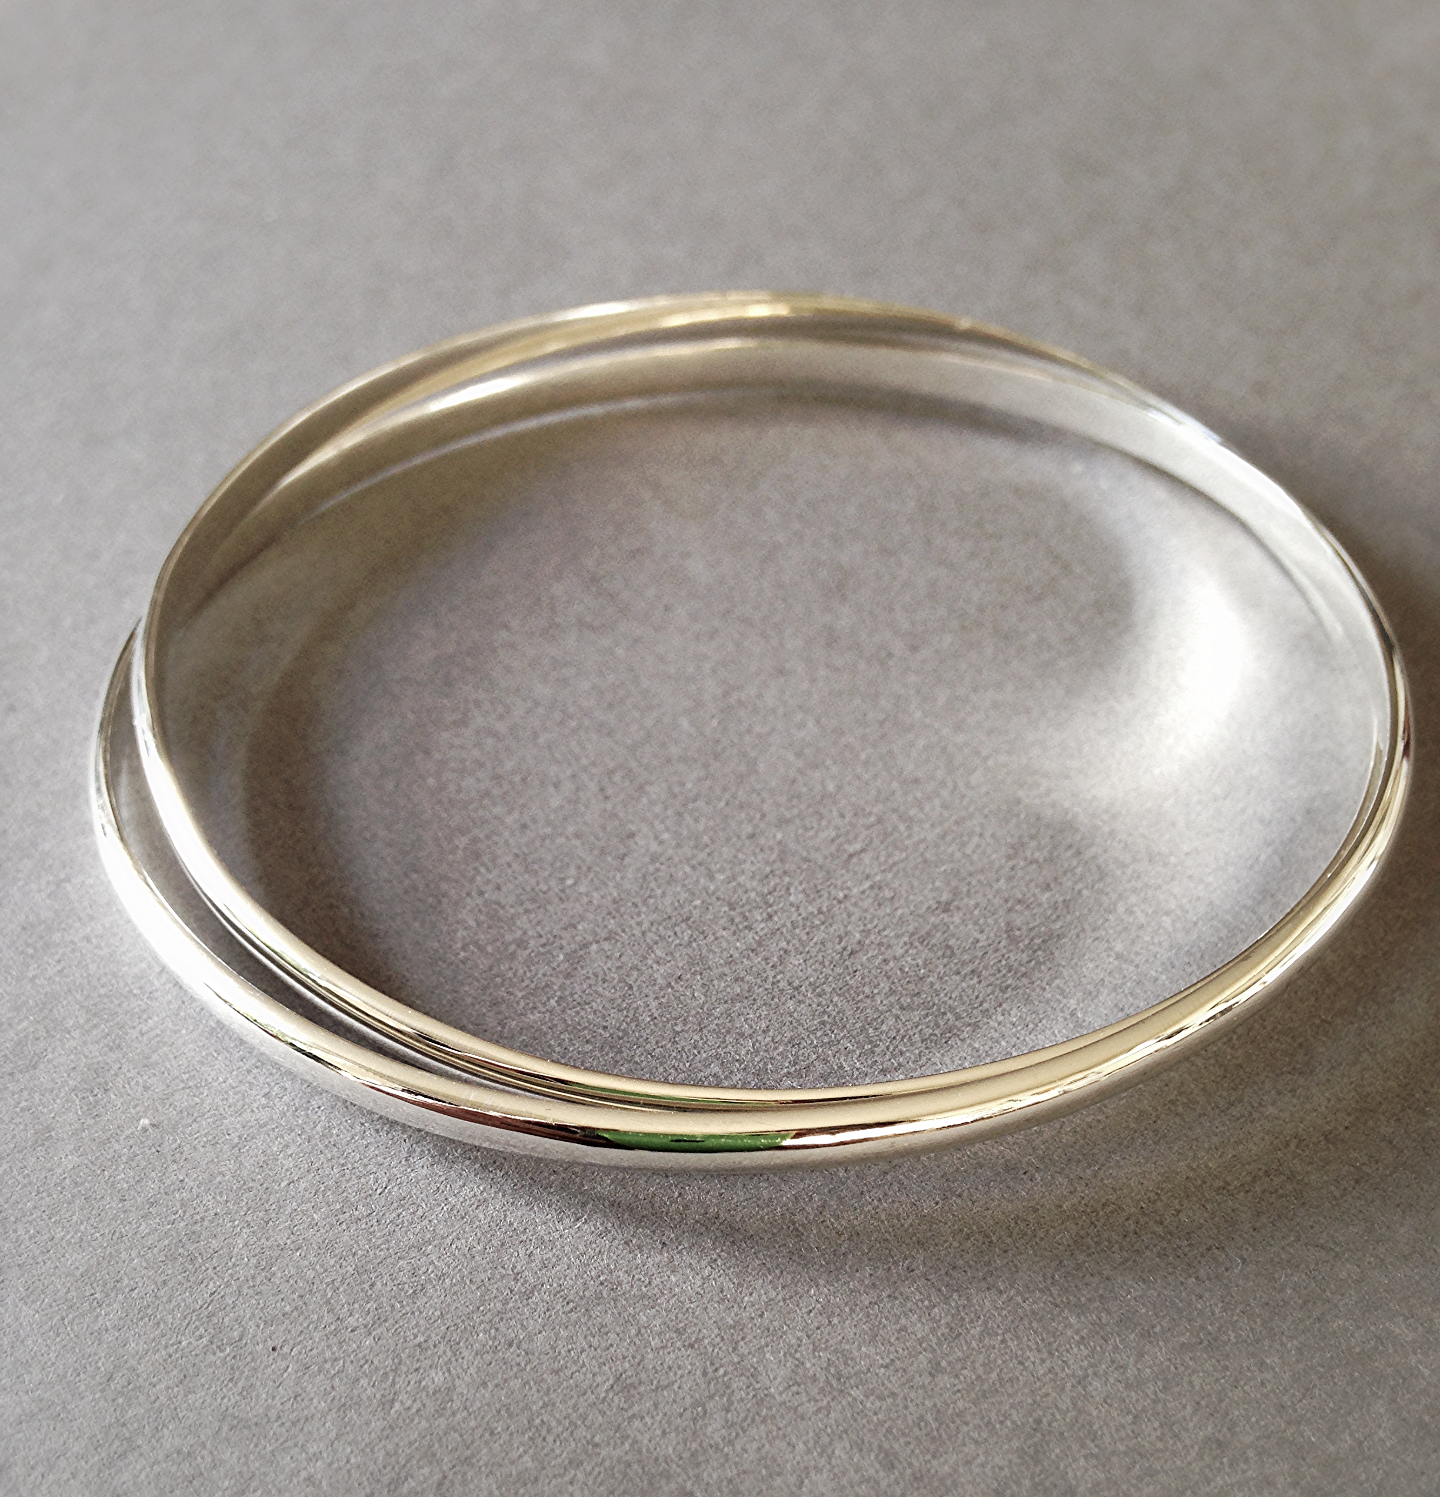 Interlocking bangle